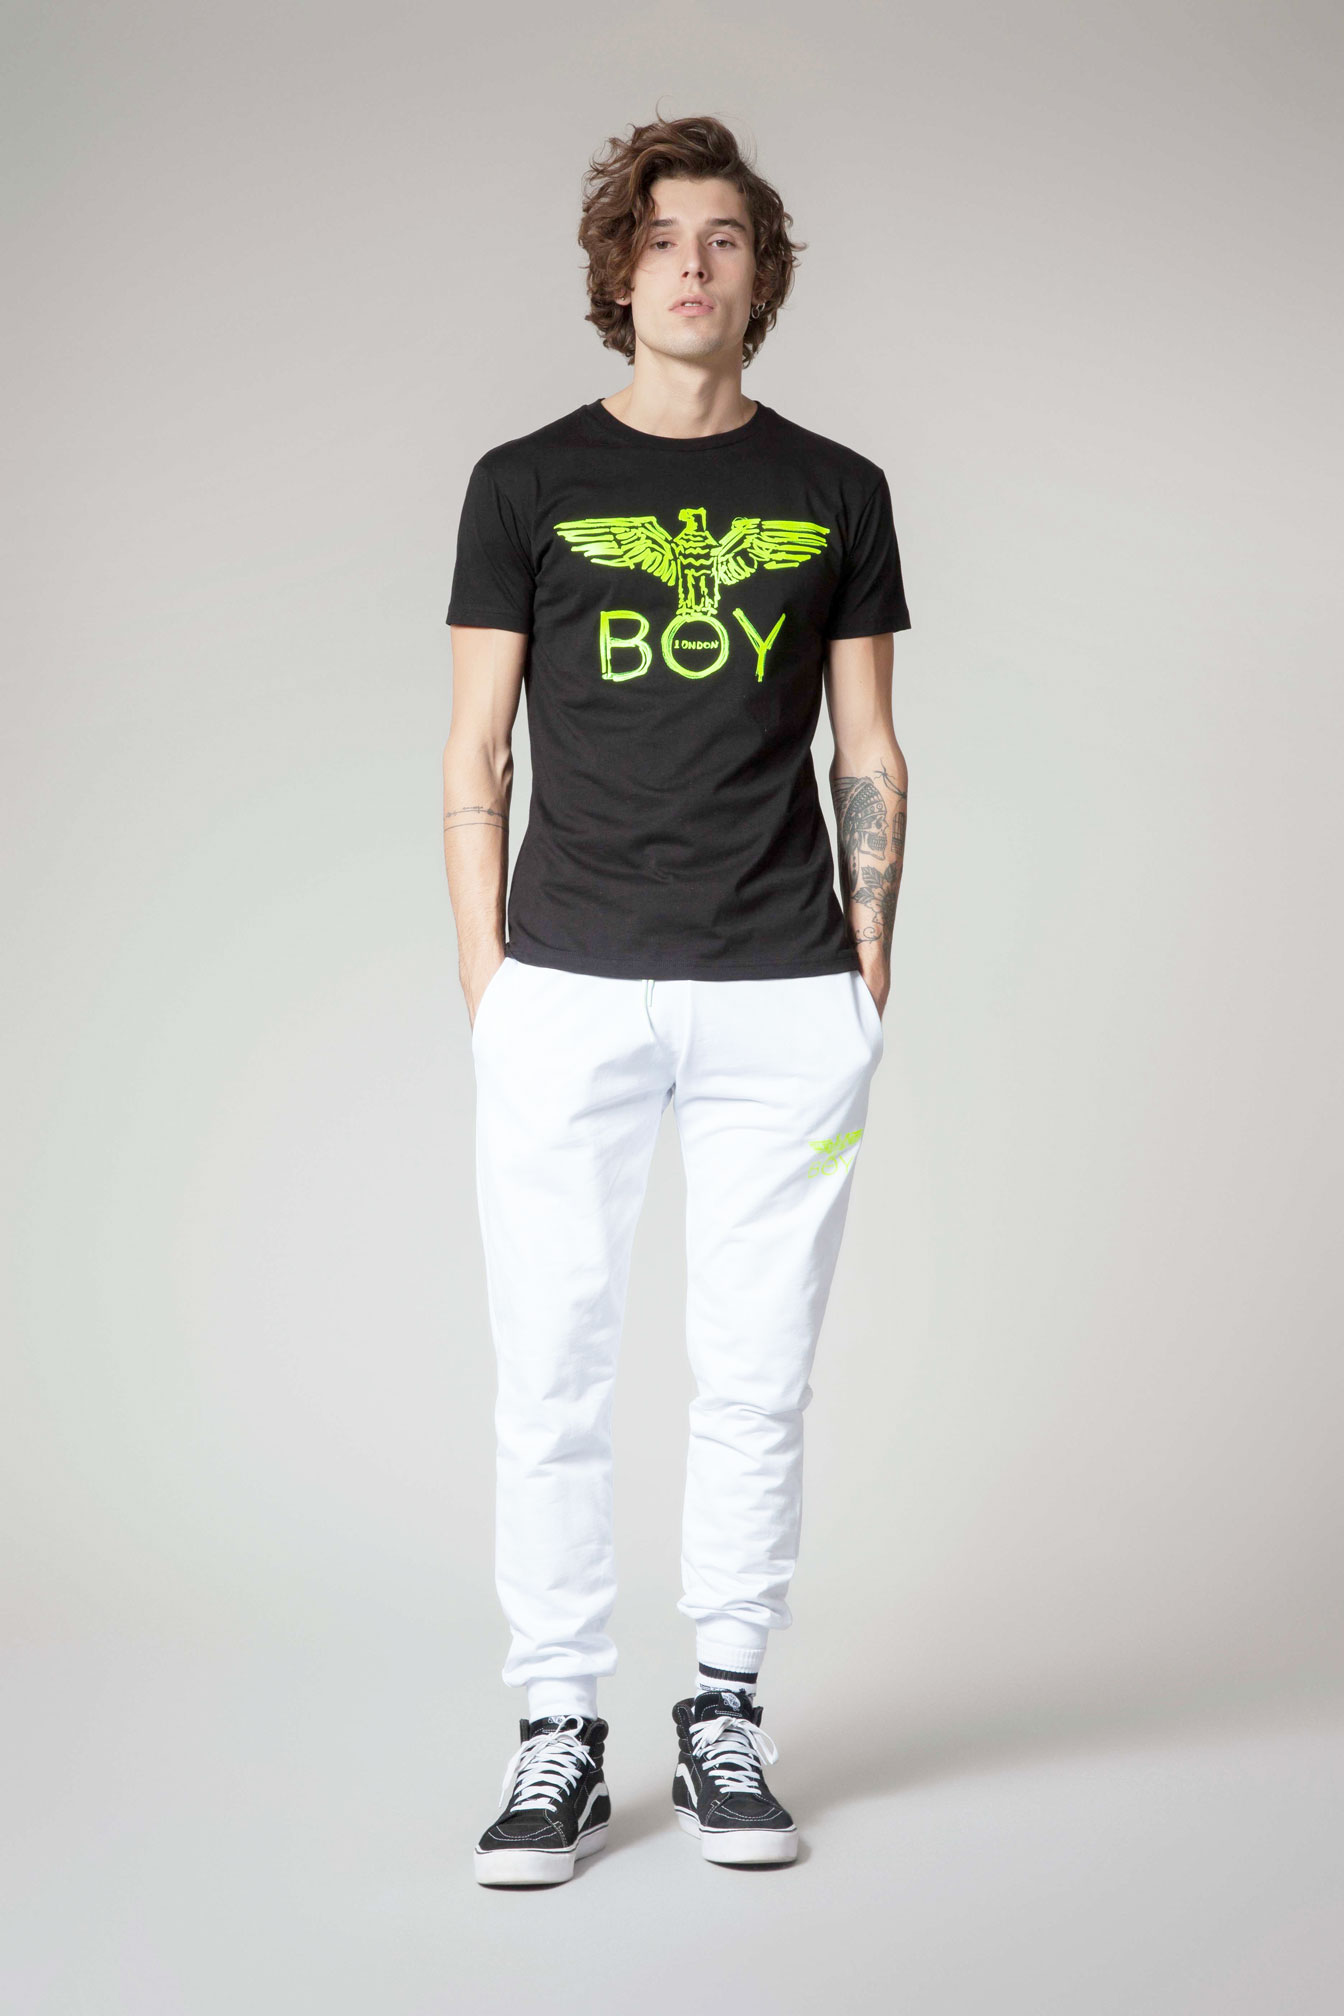 T-SHIRT - BLU6519 - BOY LONDON